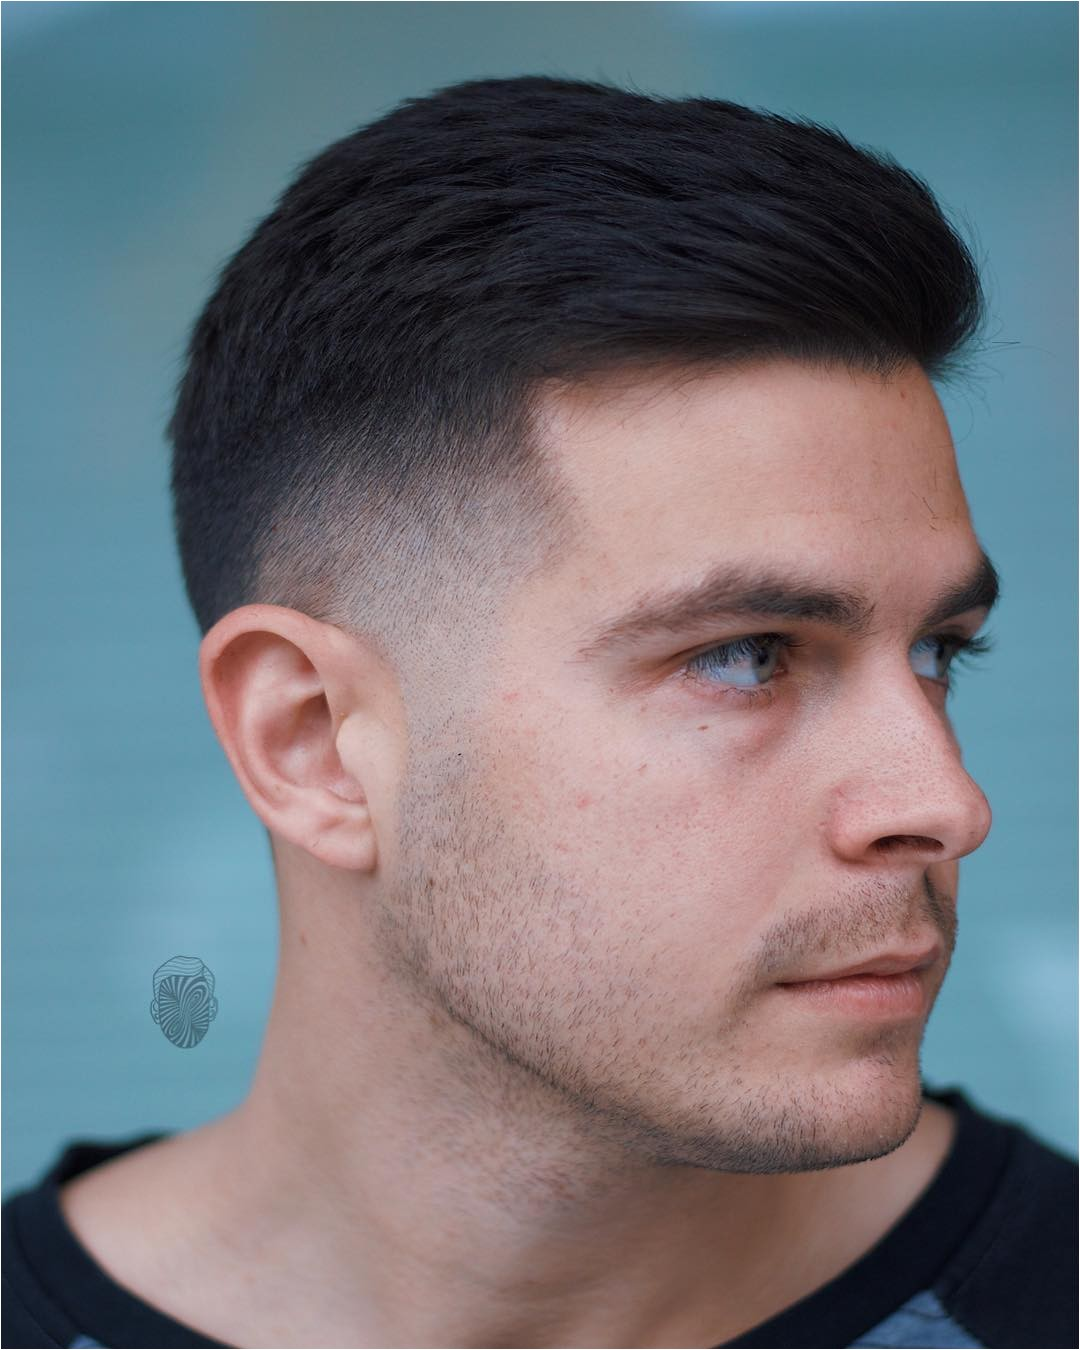 Hairstyles for Short Haired Men Short Hairstyles for Men 2018